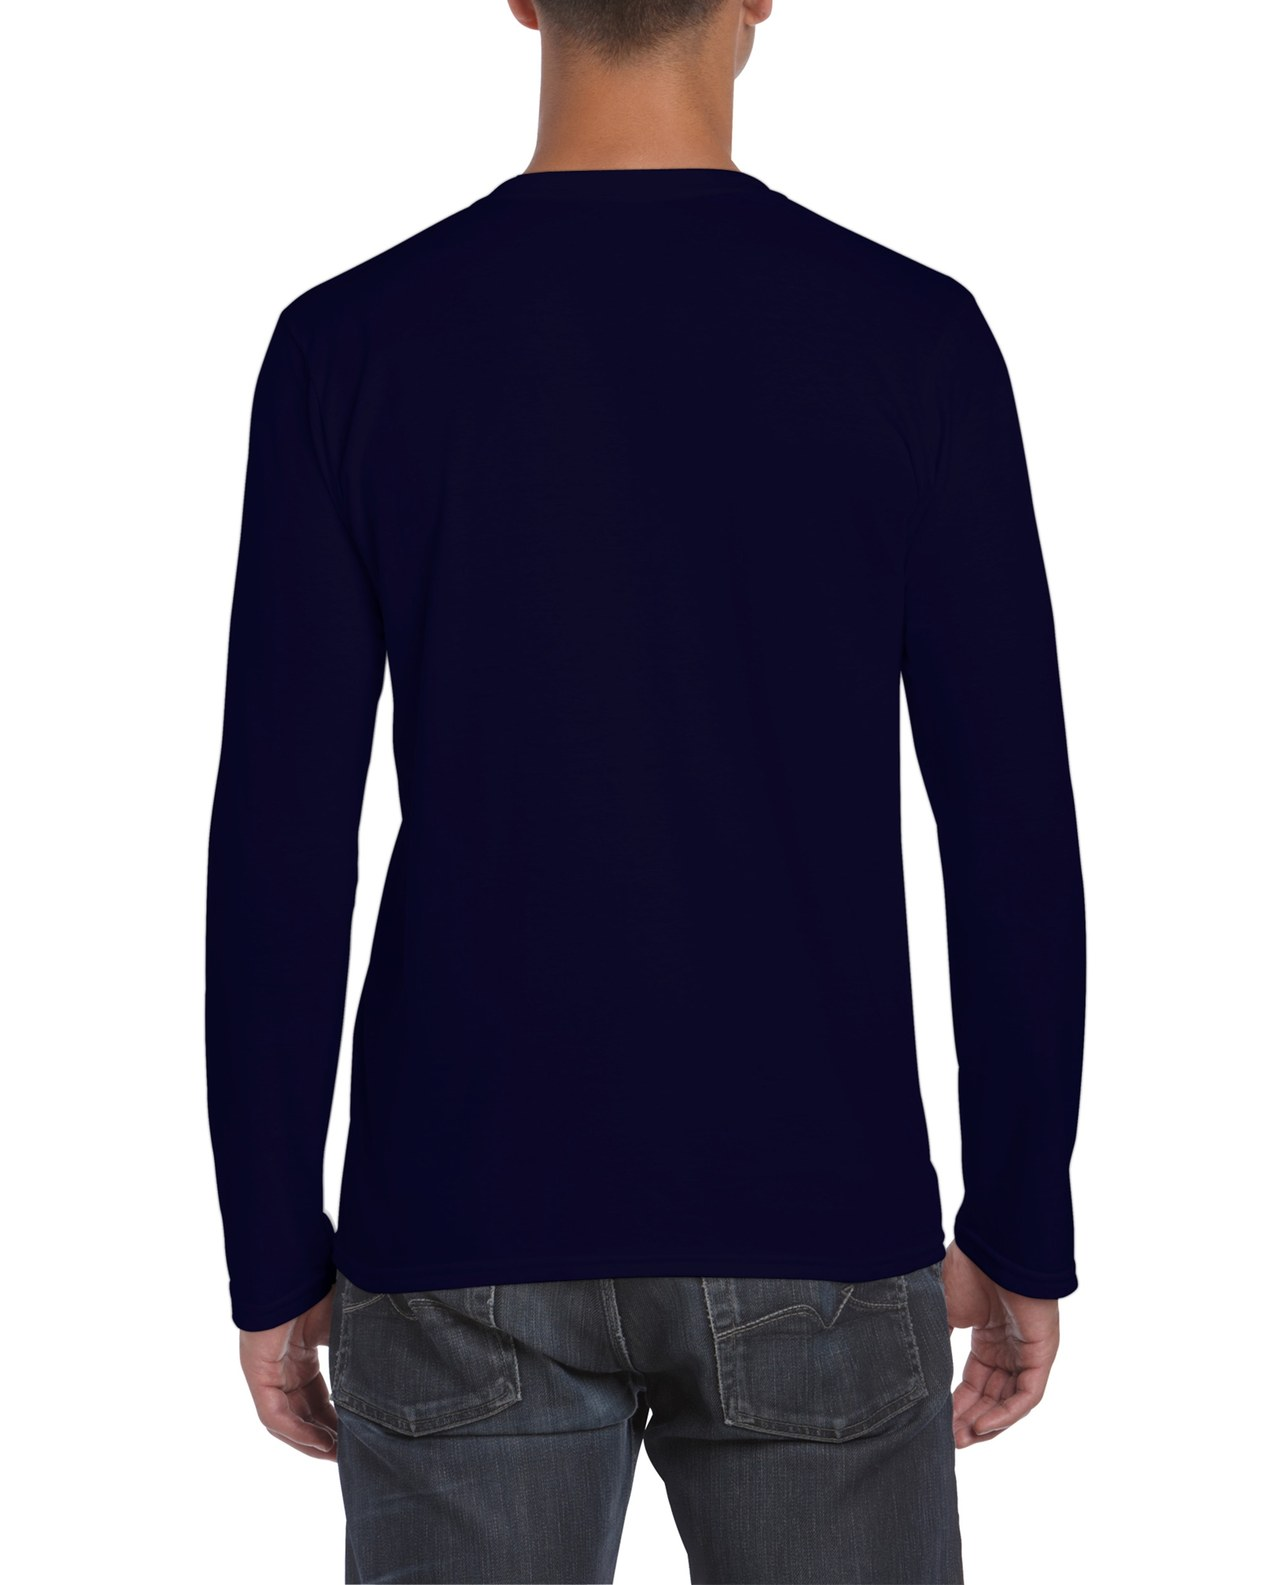 0a0506b147e 64400. Gildan Softstyle®. Adult Long Sleeve T-Shirt. Compare. Add to  Favorites. Fit